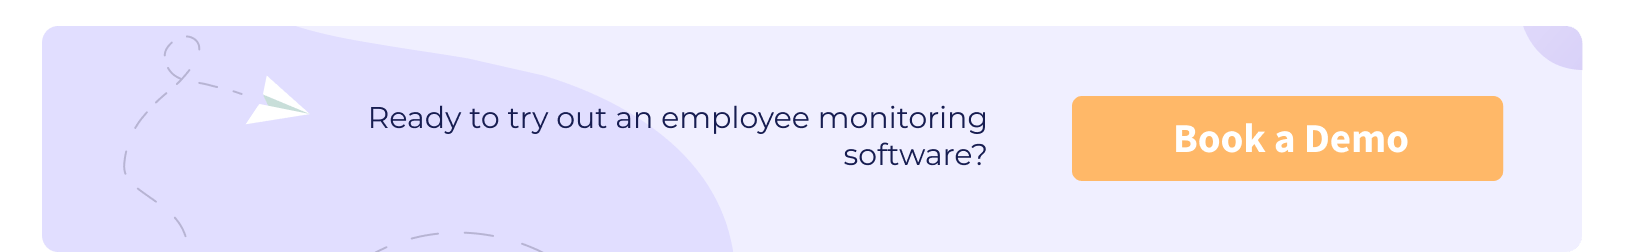 try employee monitoring software for free